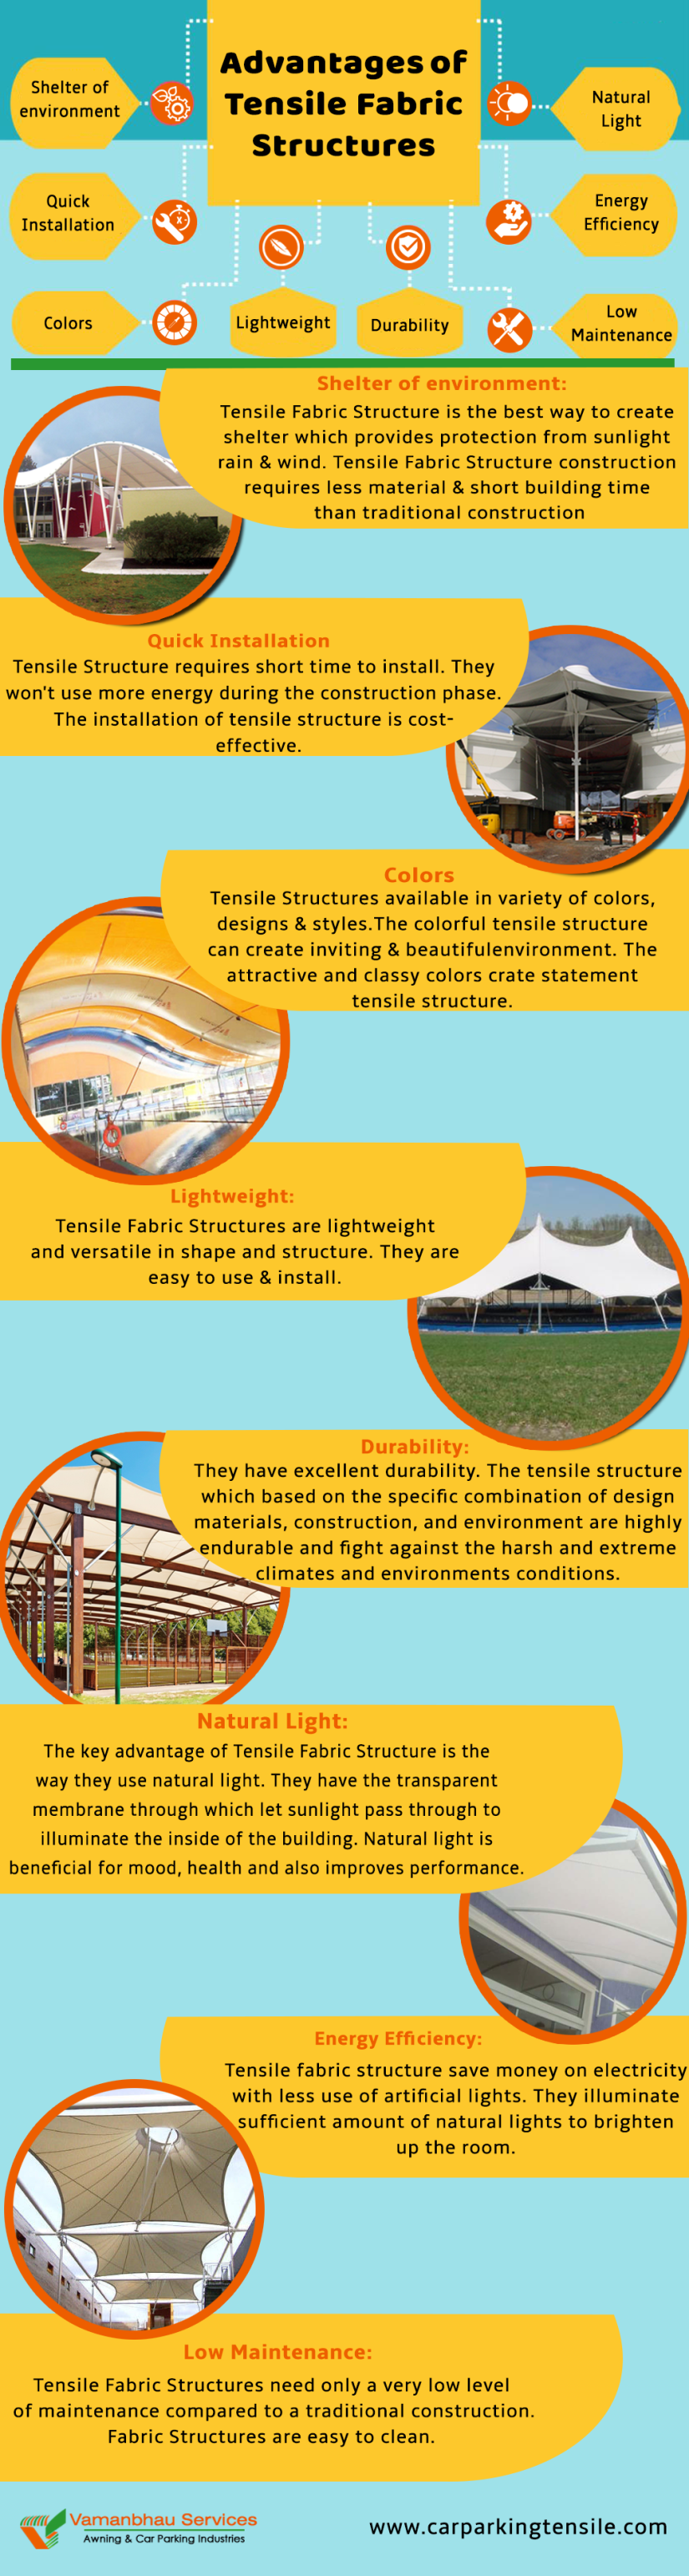 Advantages of Tensile Fabric Structures